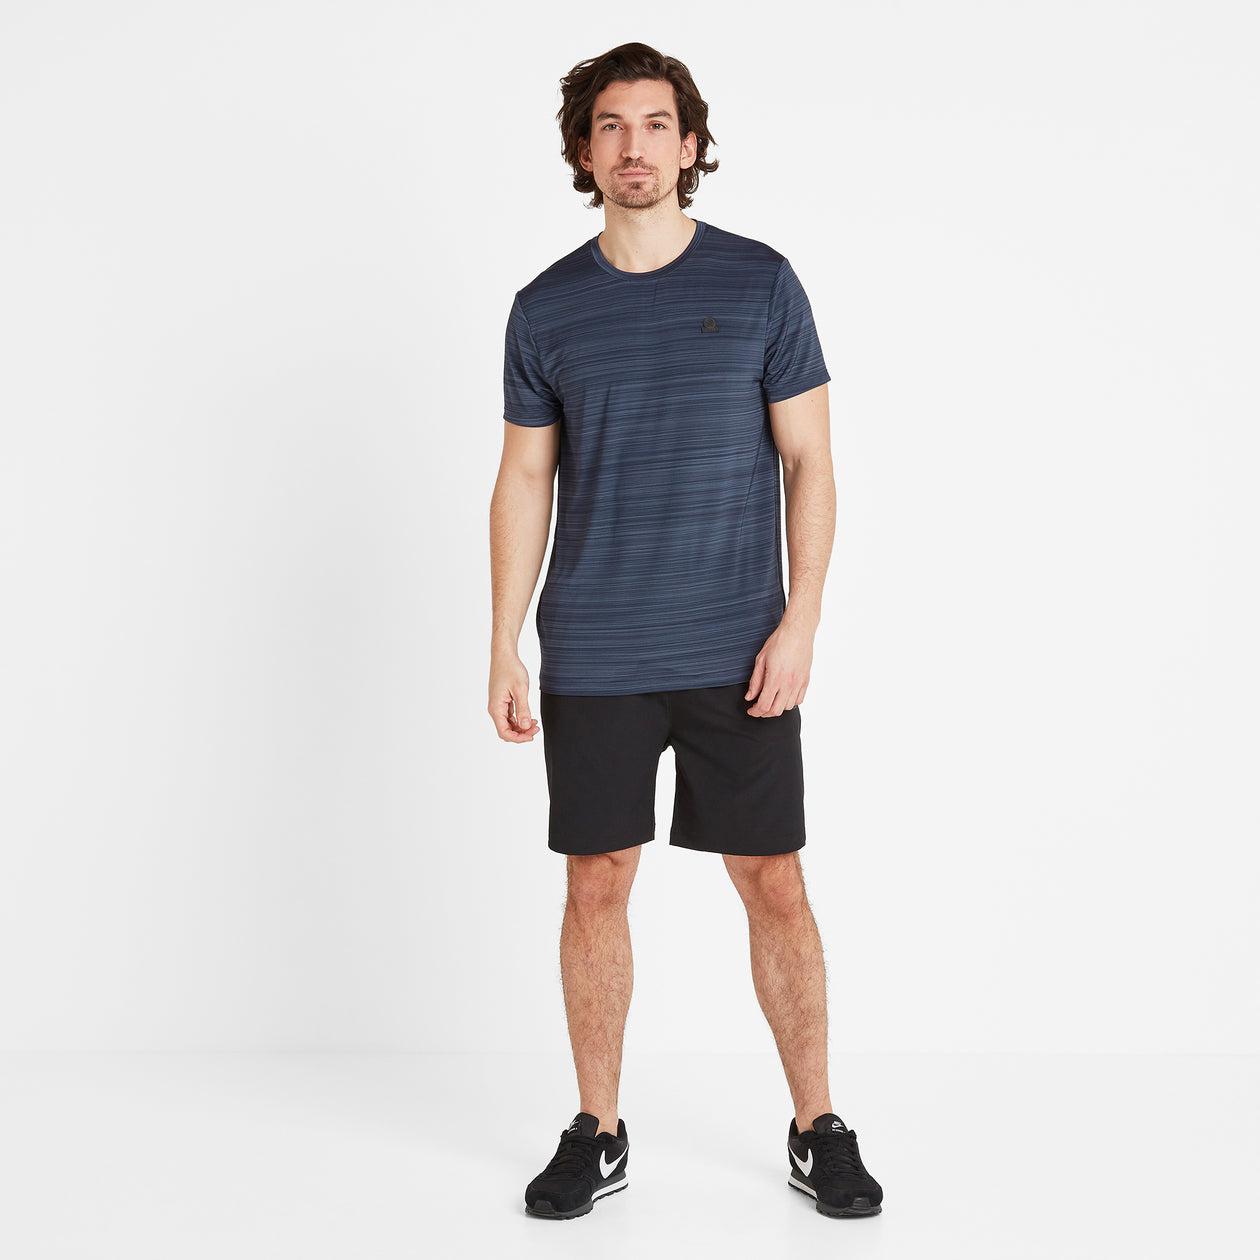 Gawber Mens Tech T-Shirt - Dark Indigo image 4